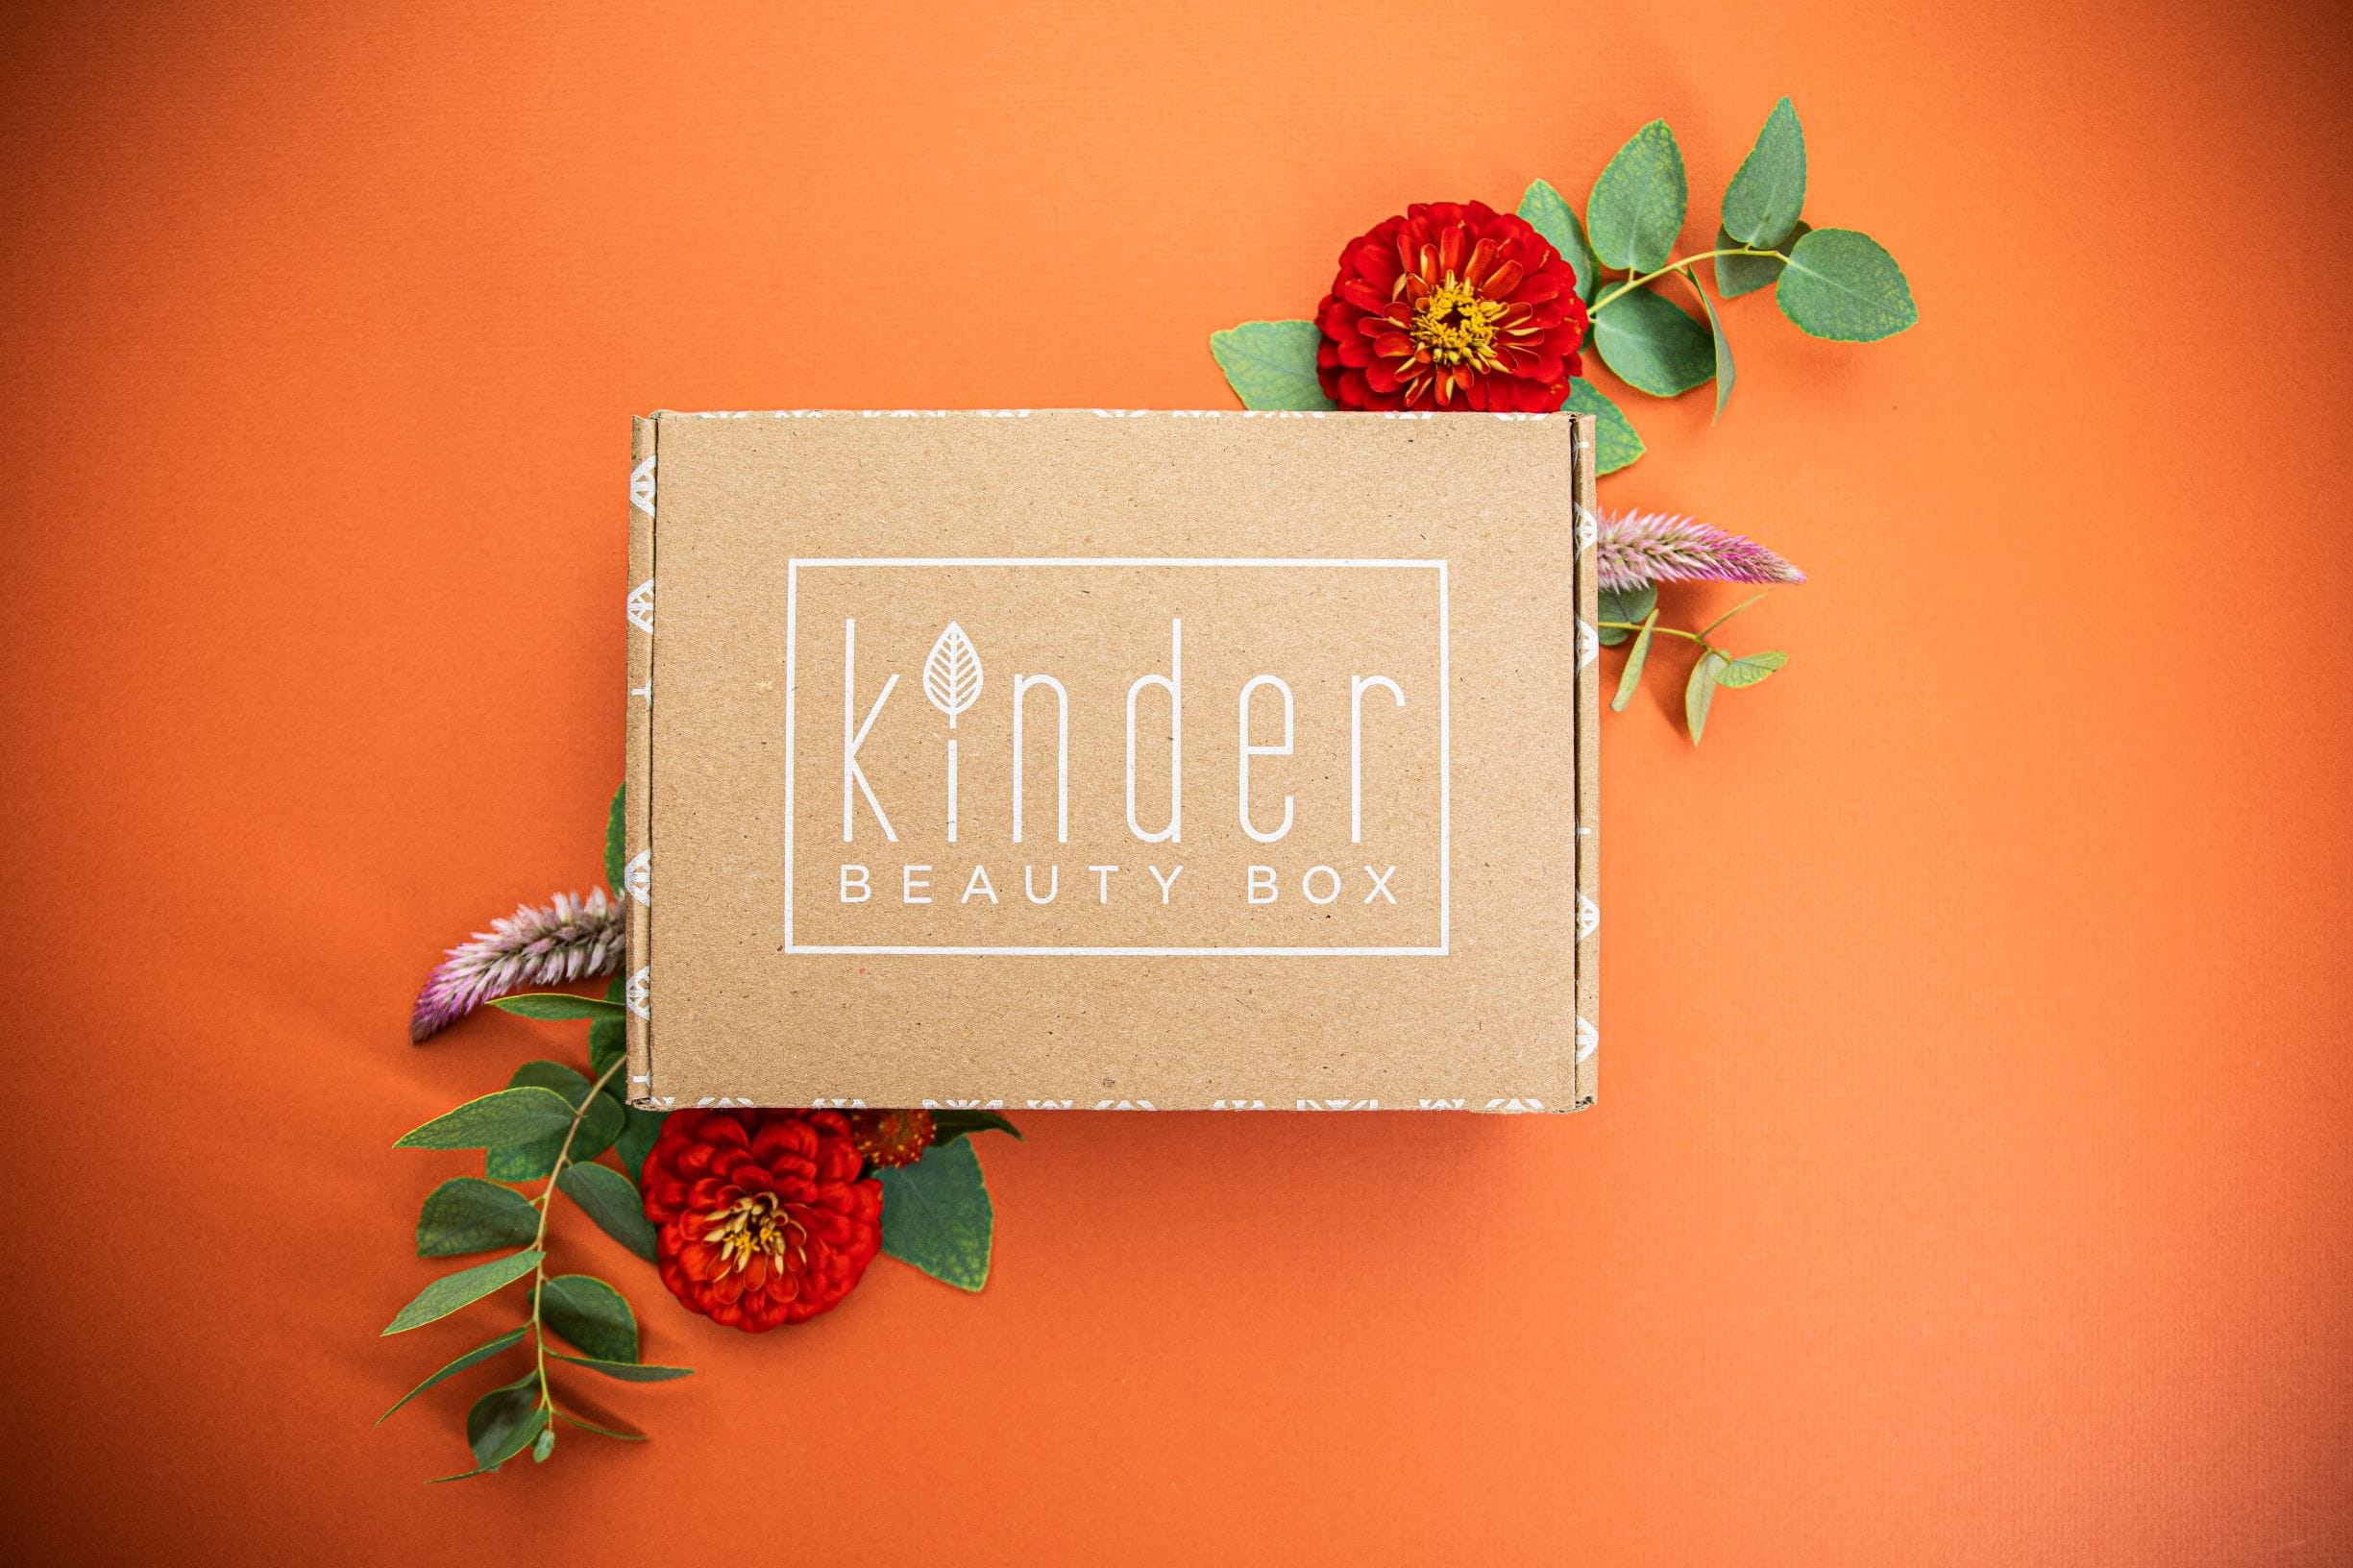 Kinder Beauty Box Black Friday Sale: 15% Off First Box!